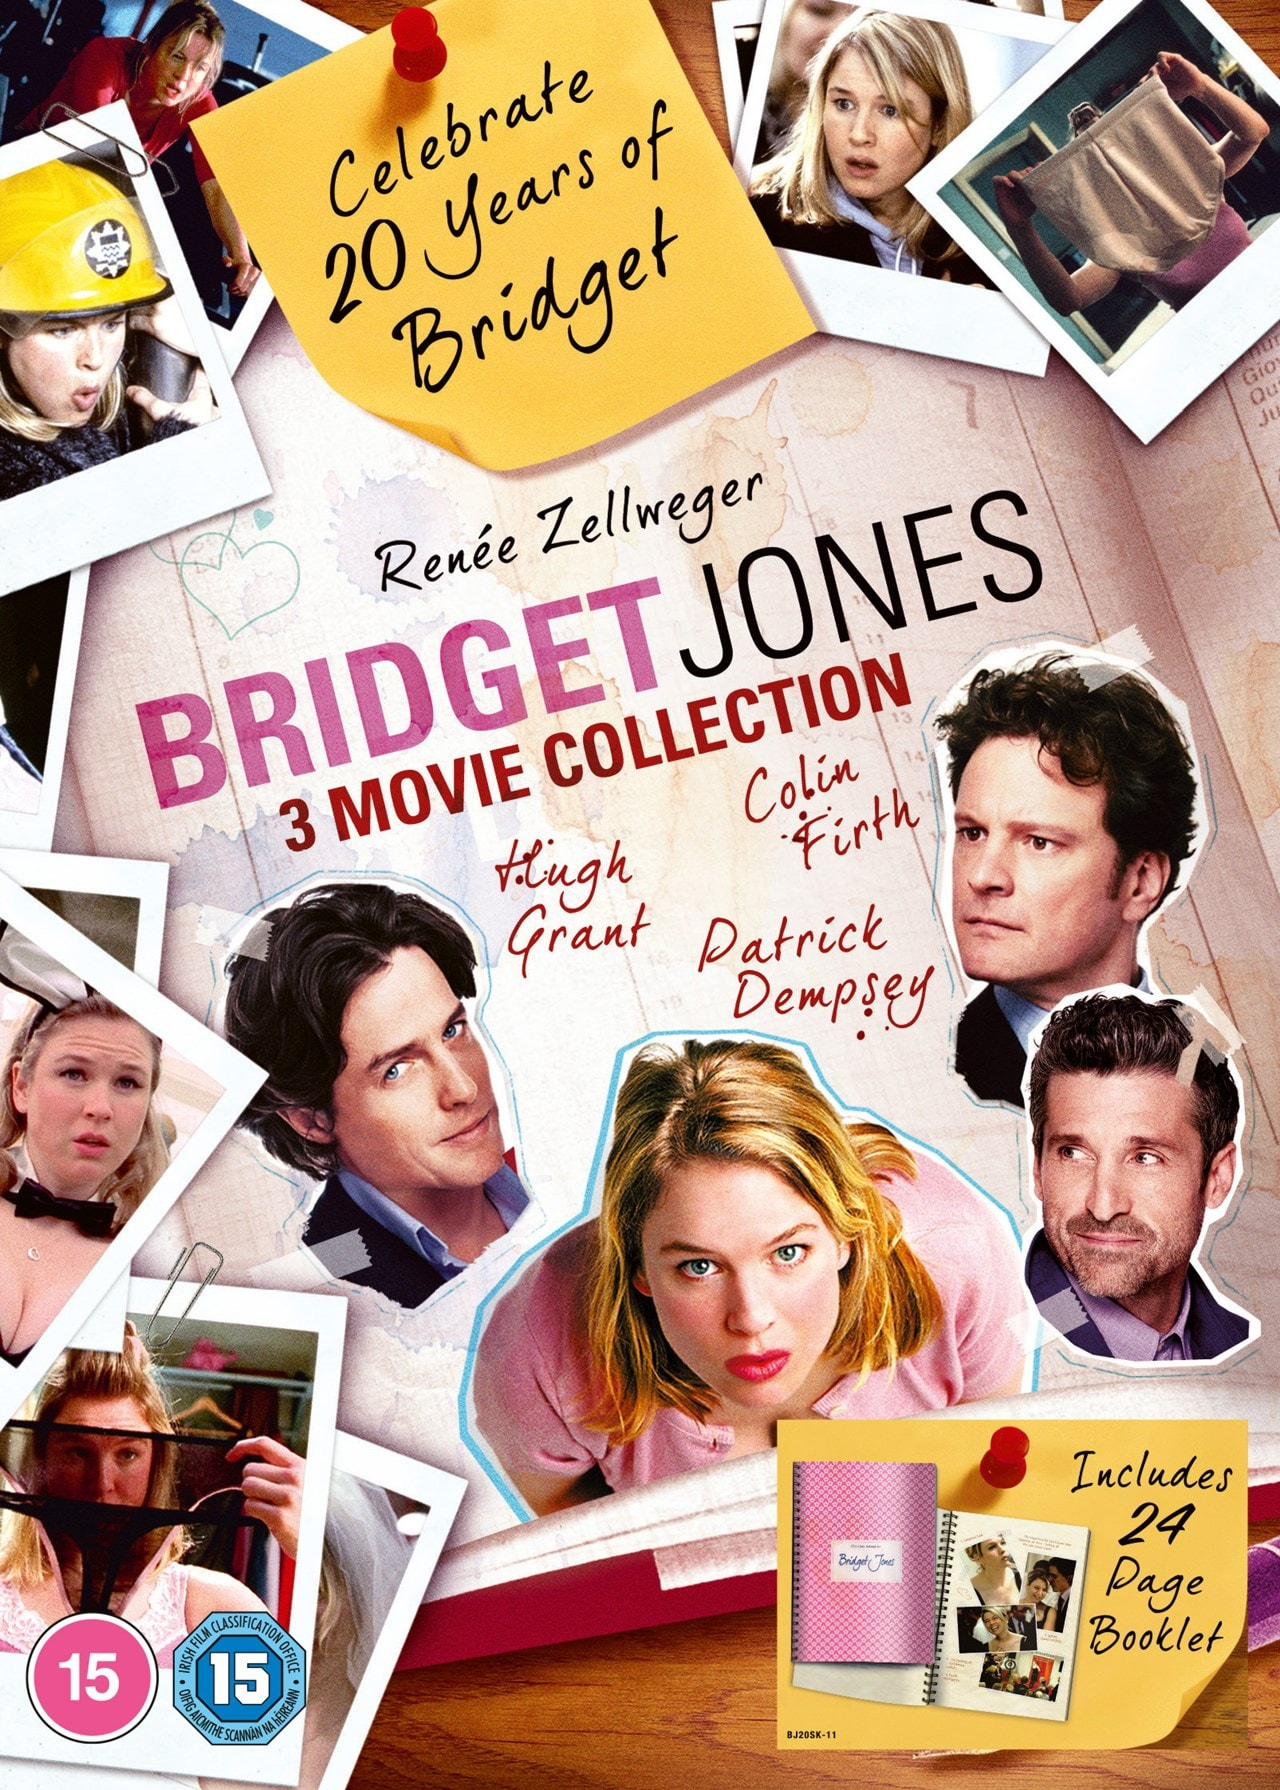 Bridget Jones's Diary/The Edge of Reason/Bridget Jones's Baby - 1